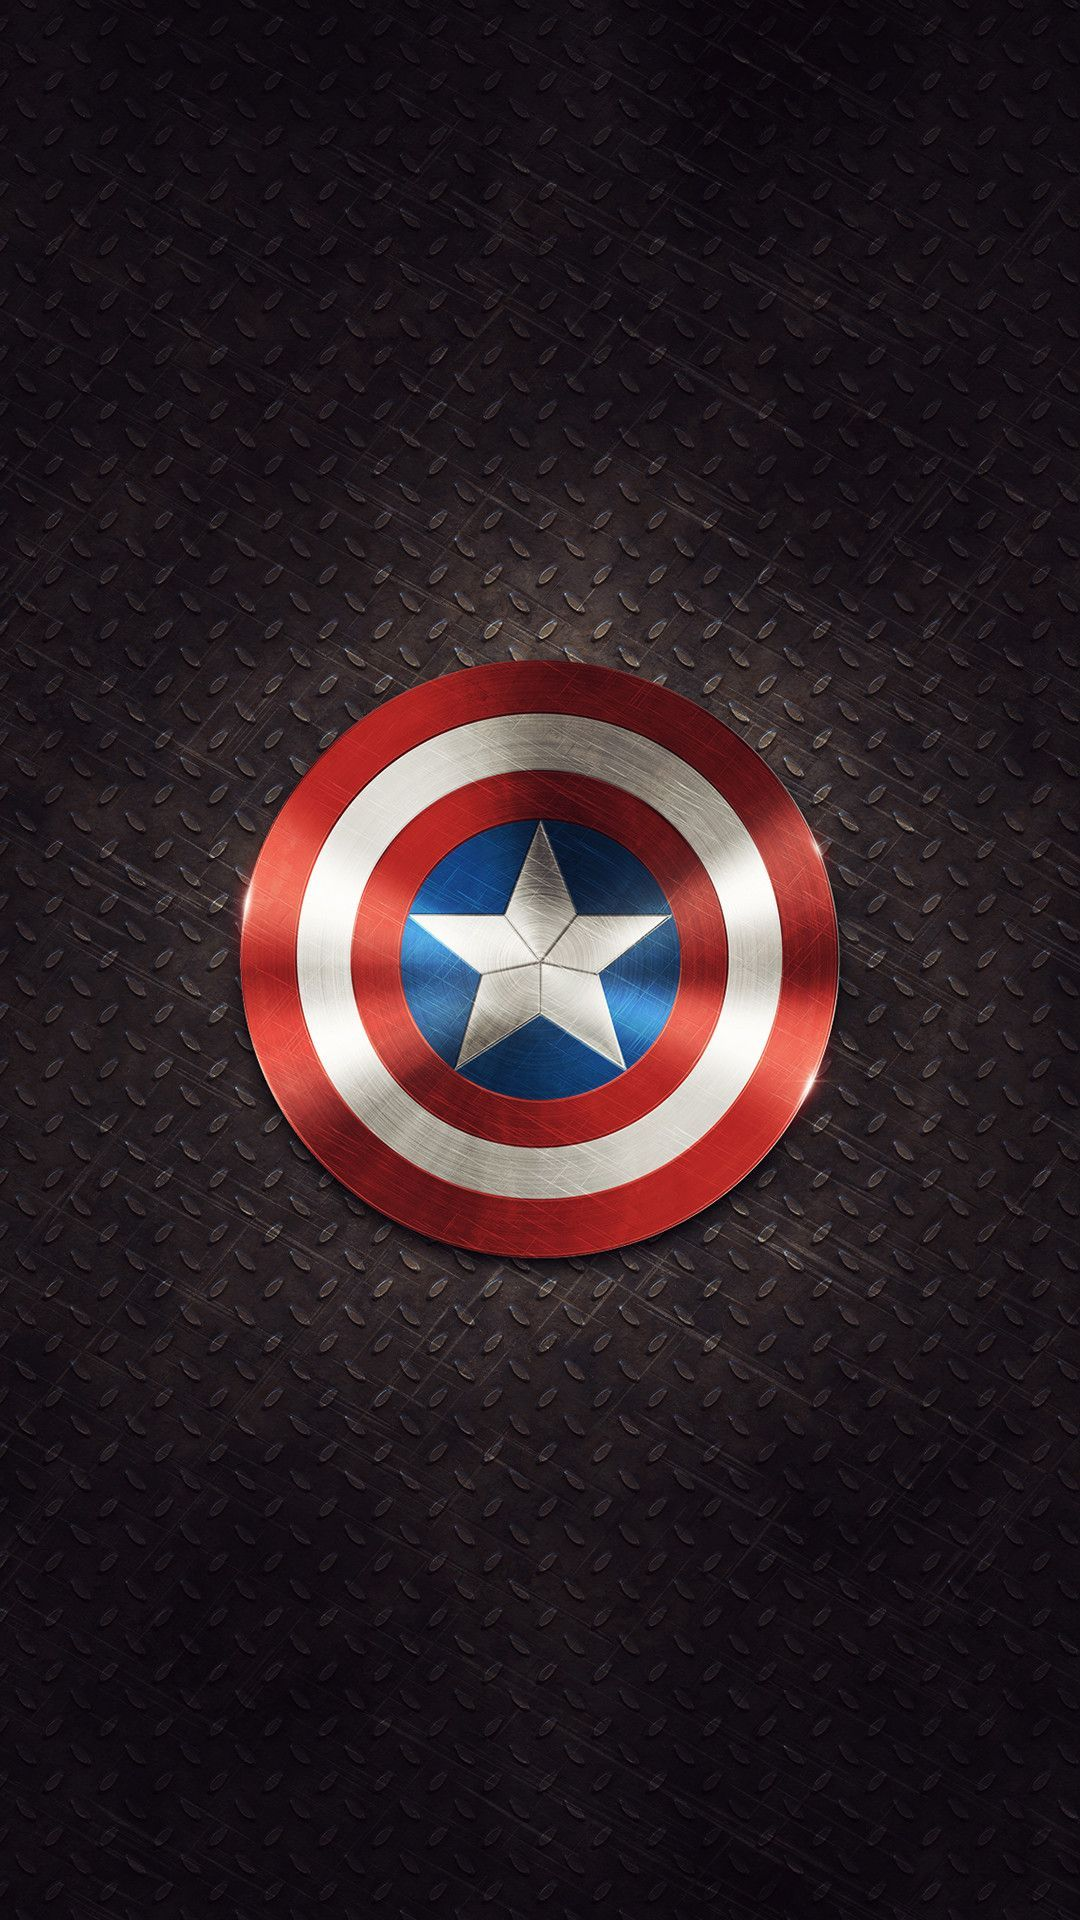 Marvel Captain America Iphone Wallpapers Top Free Marvel Captain